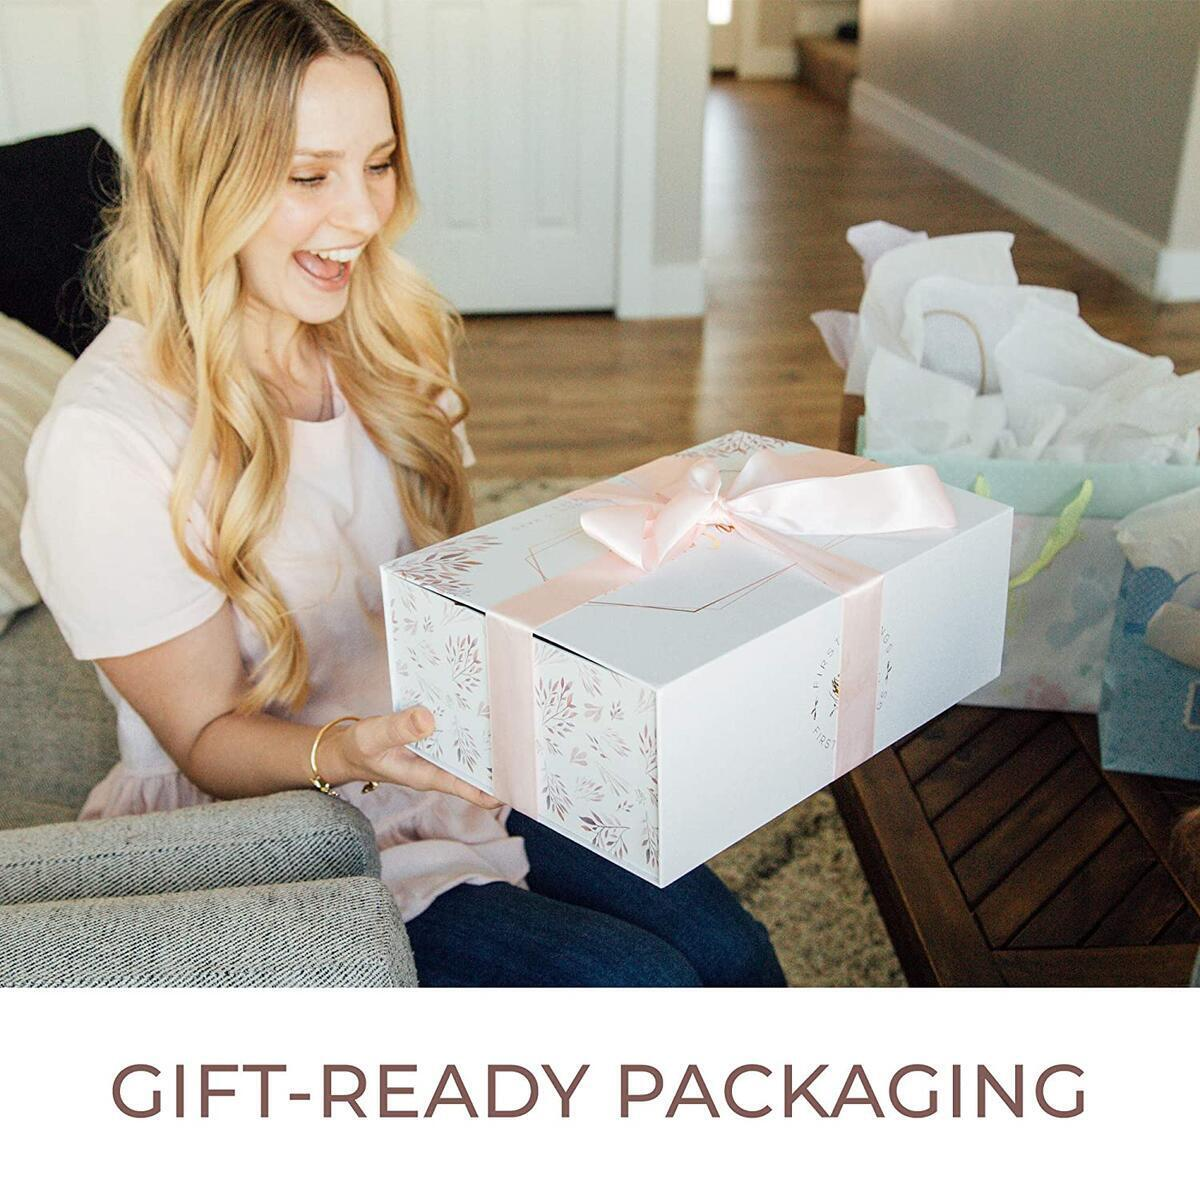 New Mom Gift Basket by First Landings | Gift Ideas for First Time Moms | Gifts for The Pregnant Mommy to be | Self Care Package for Postpartum Mother | Pregnancy Gift